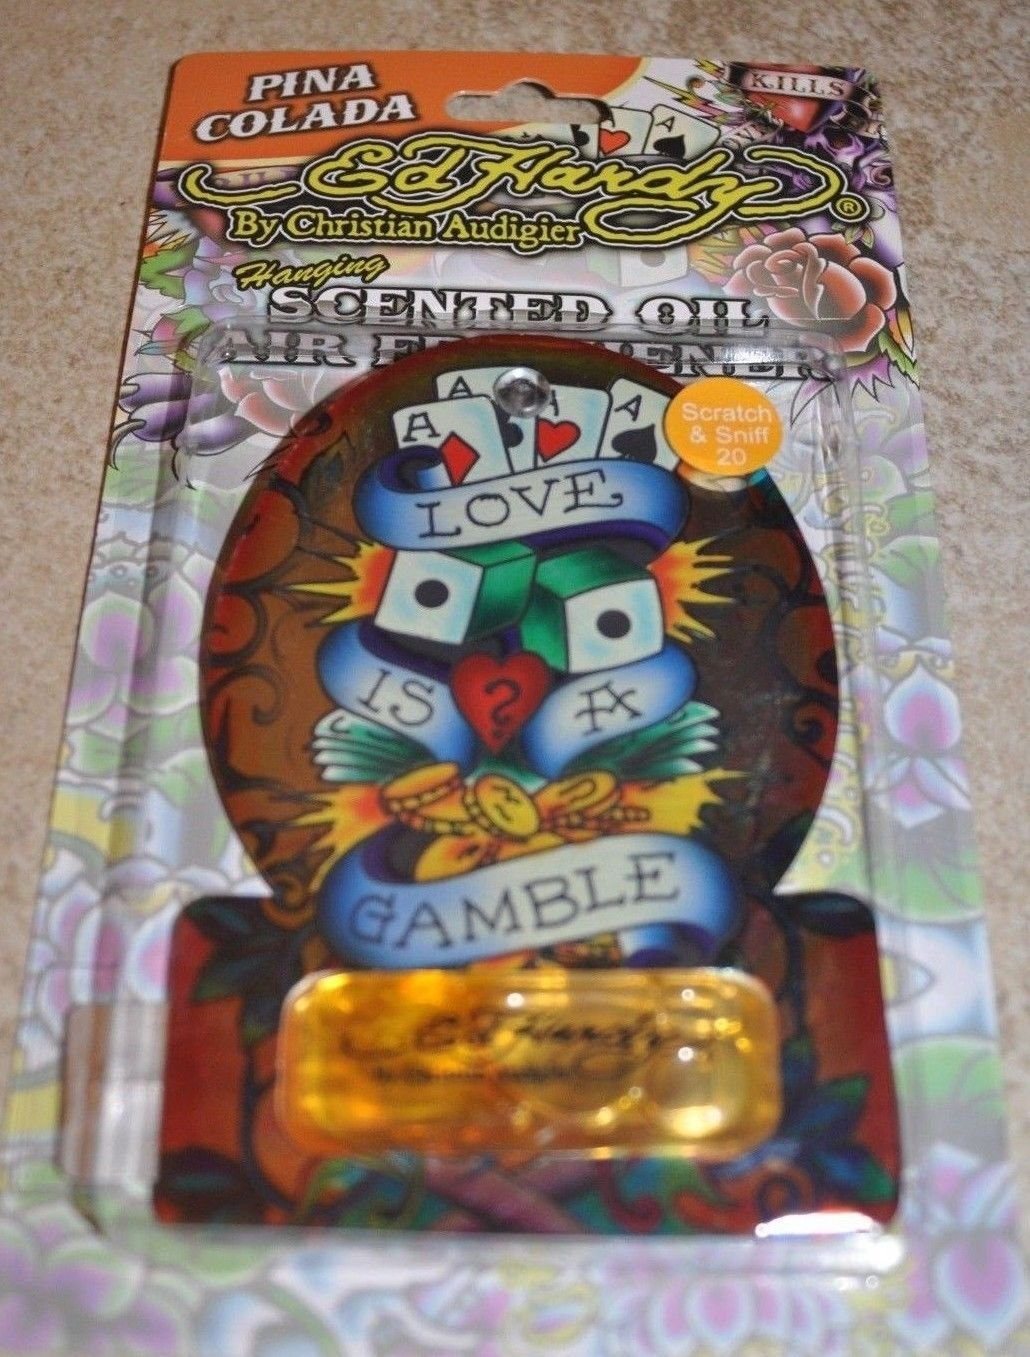 4 Ed Hardy LOVE IS A GAMBLE by Christian Audigier Scented Oil Air Freshener (PINA COLADA)